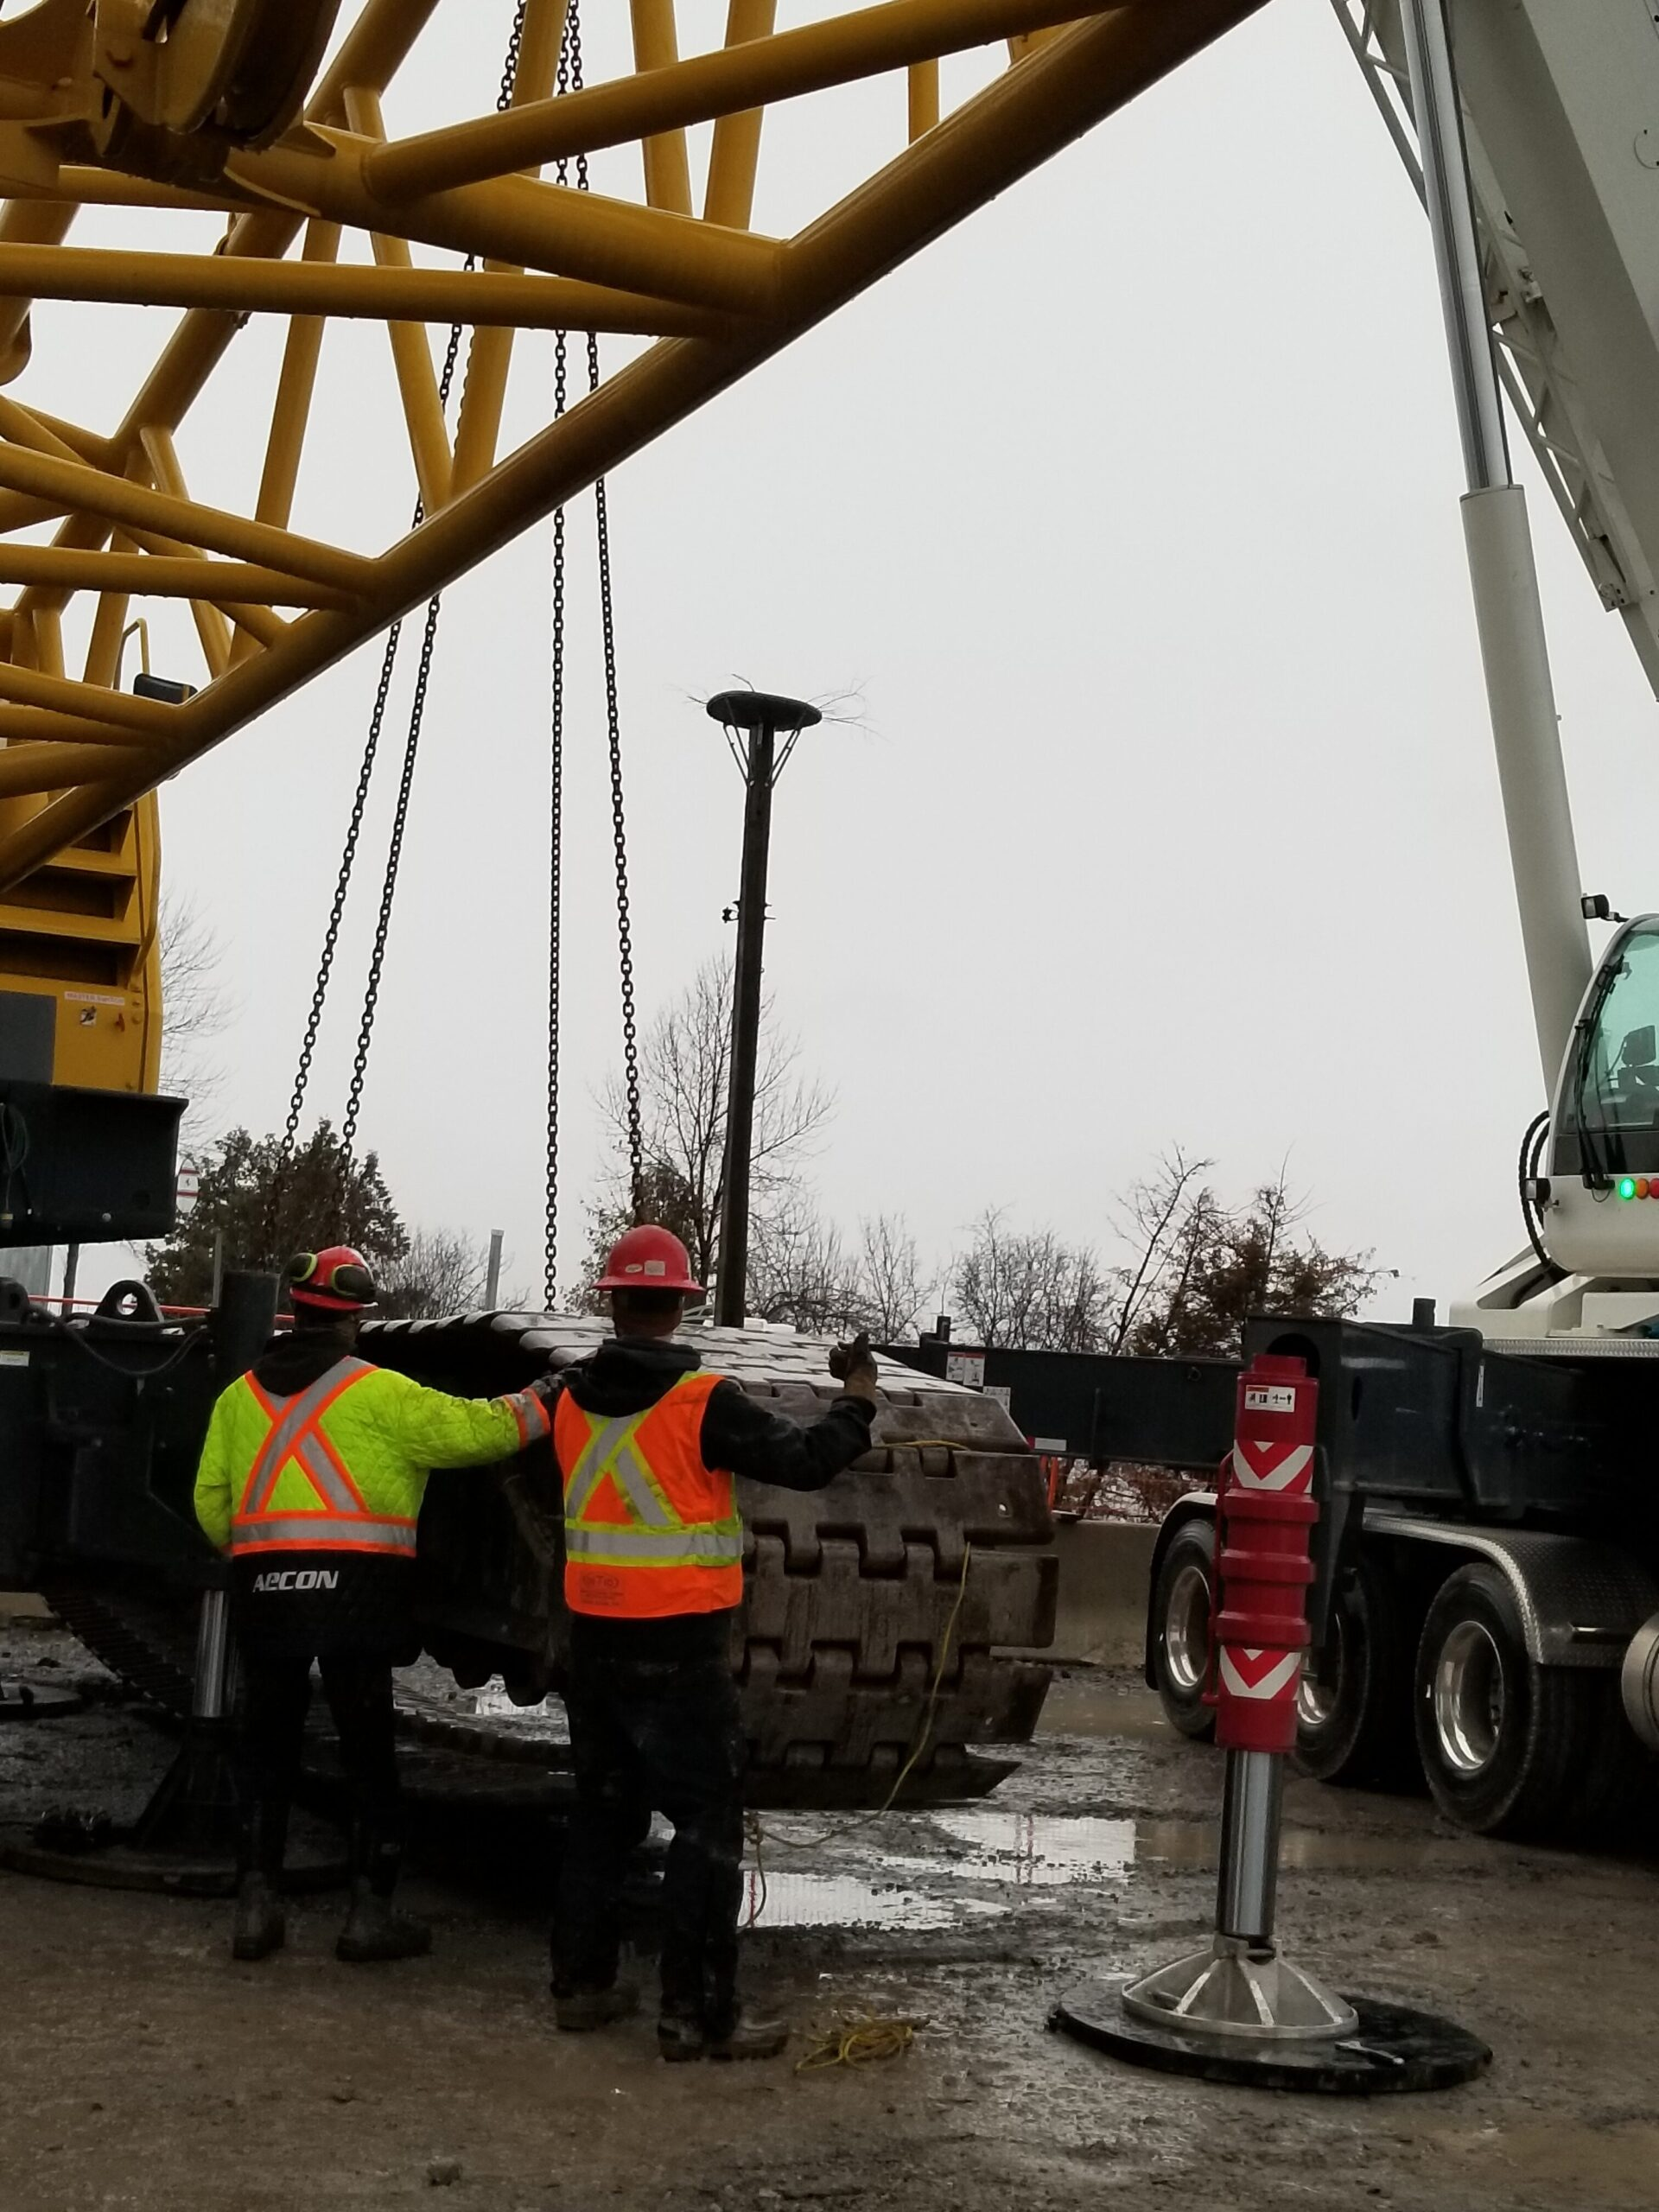 Removing the tracks from the crane body